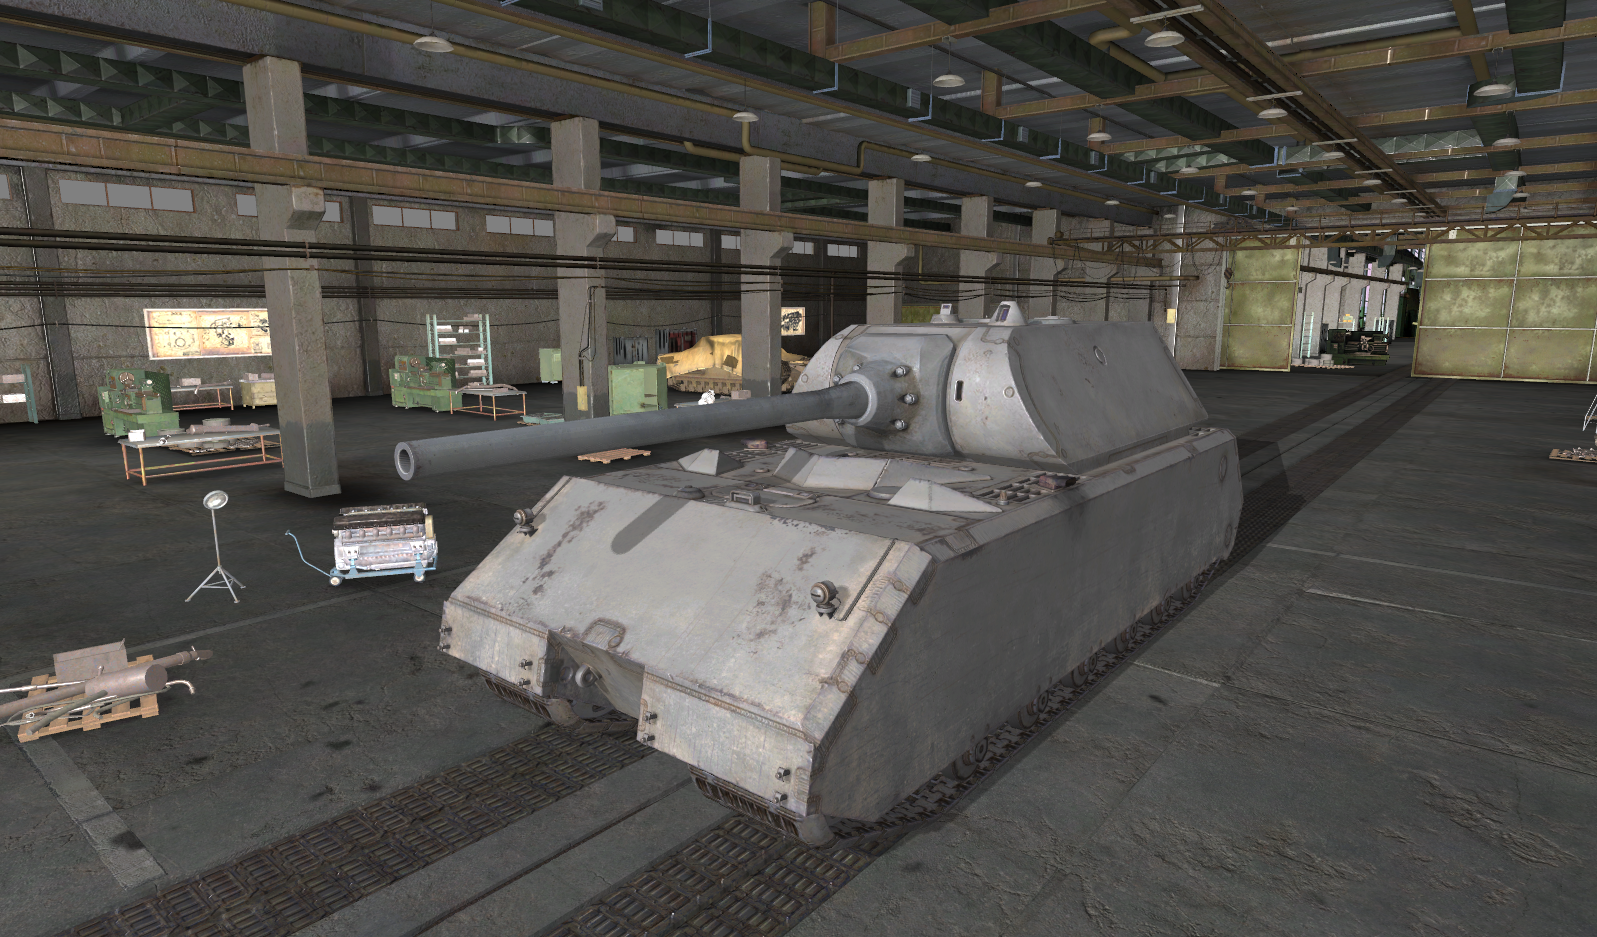 Maus_21-38-25.png